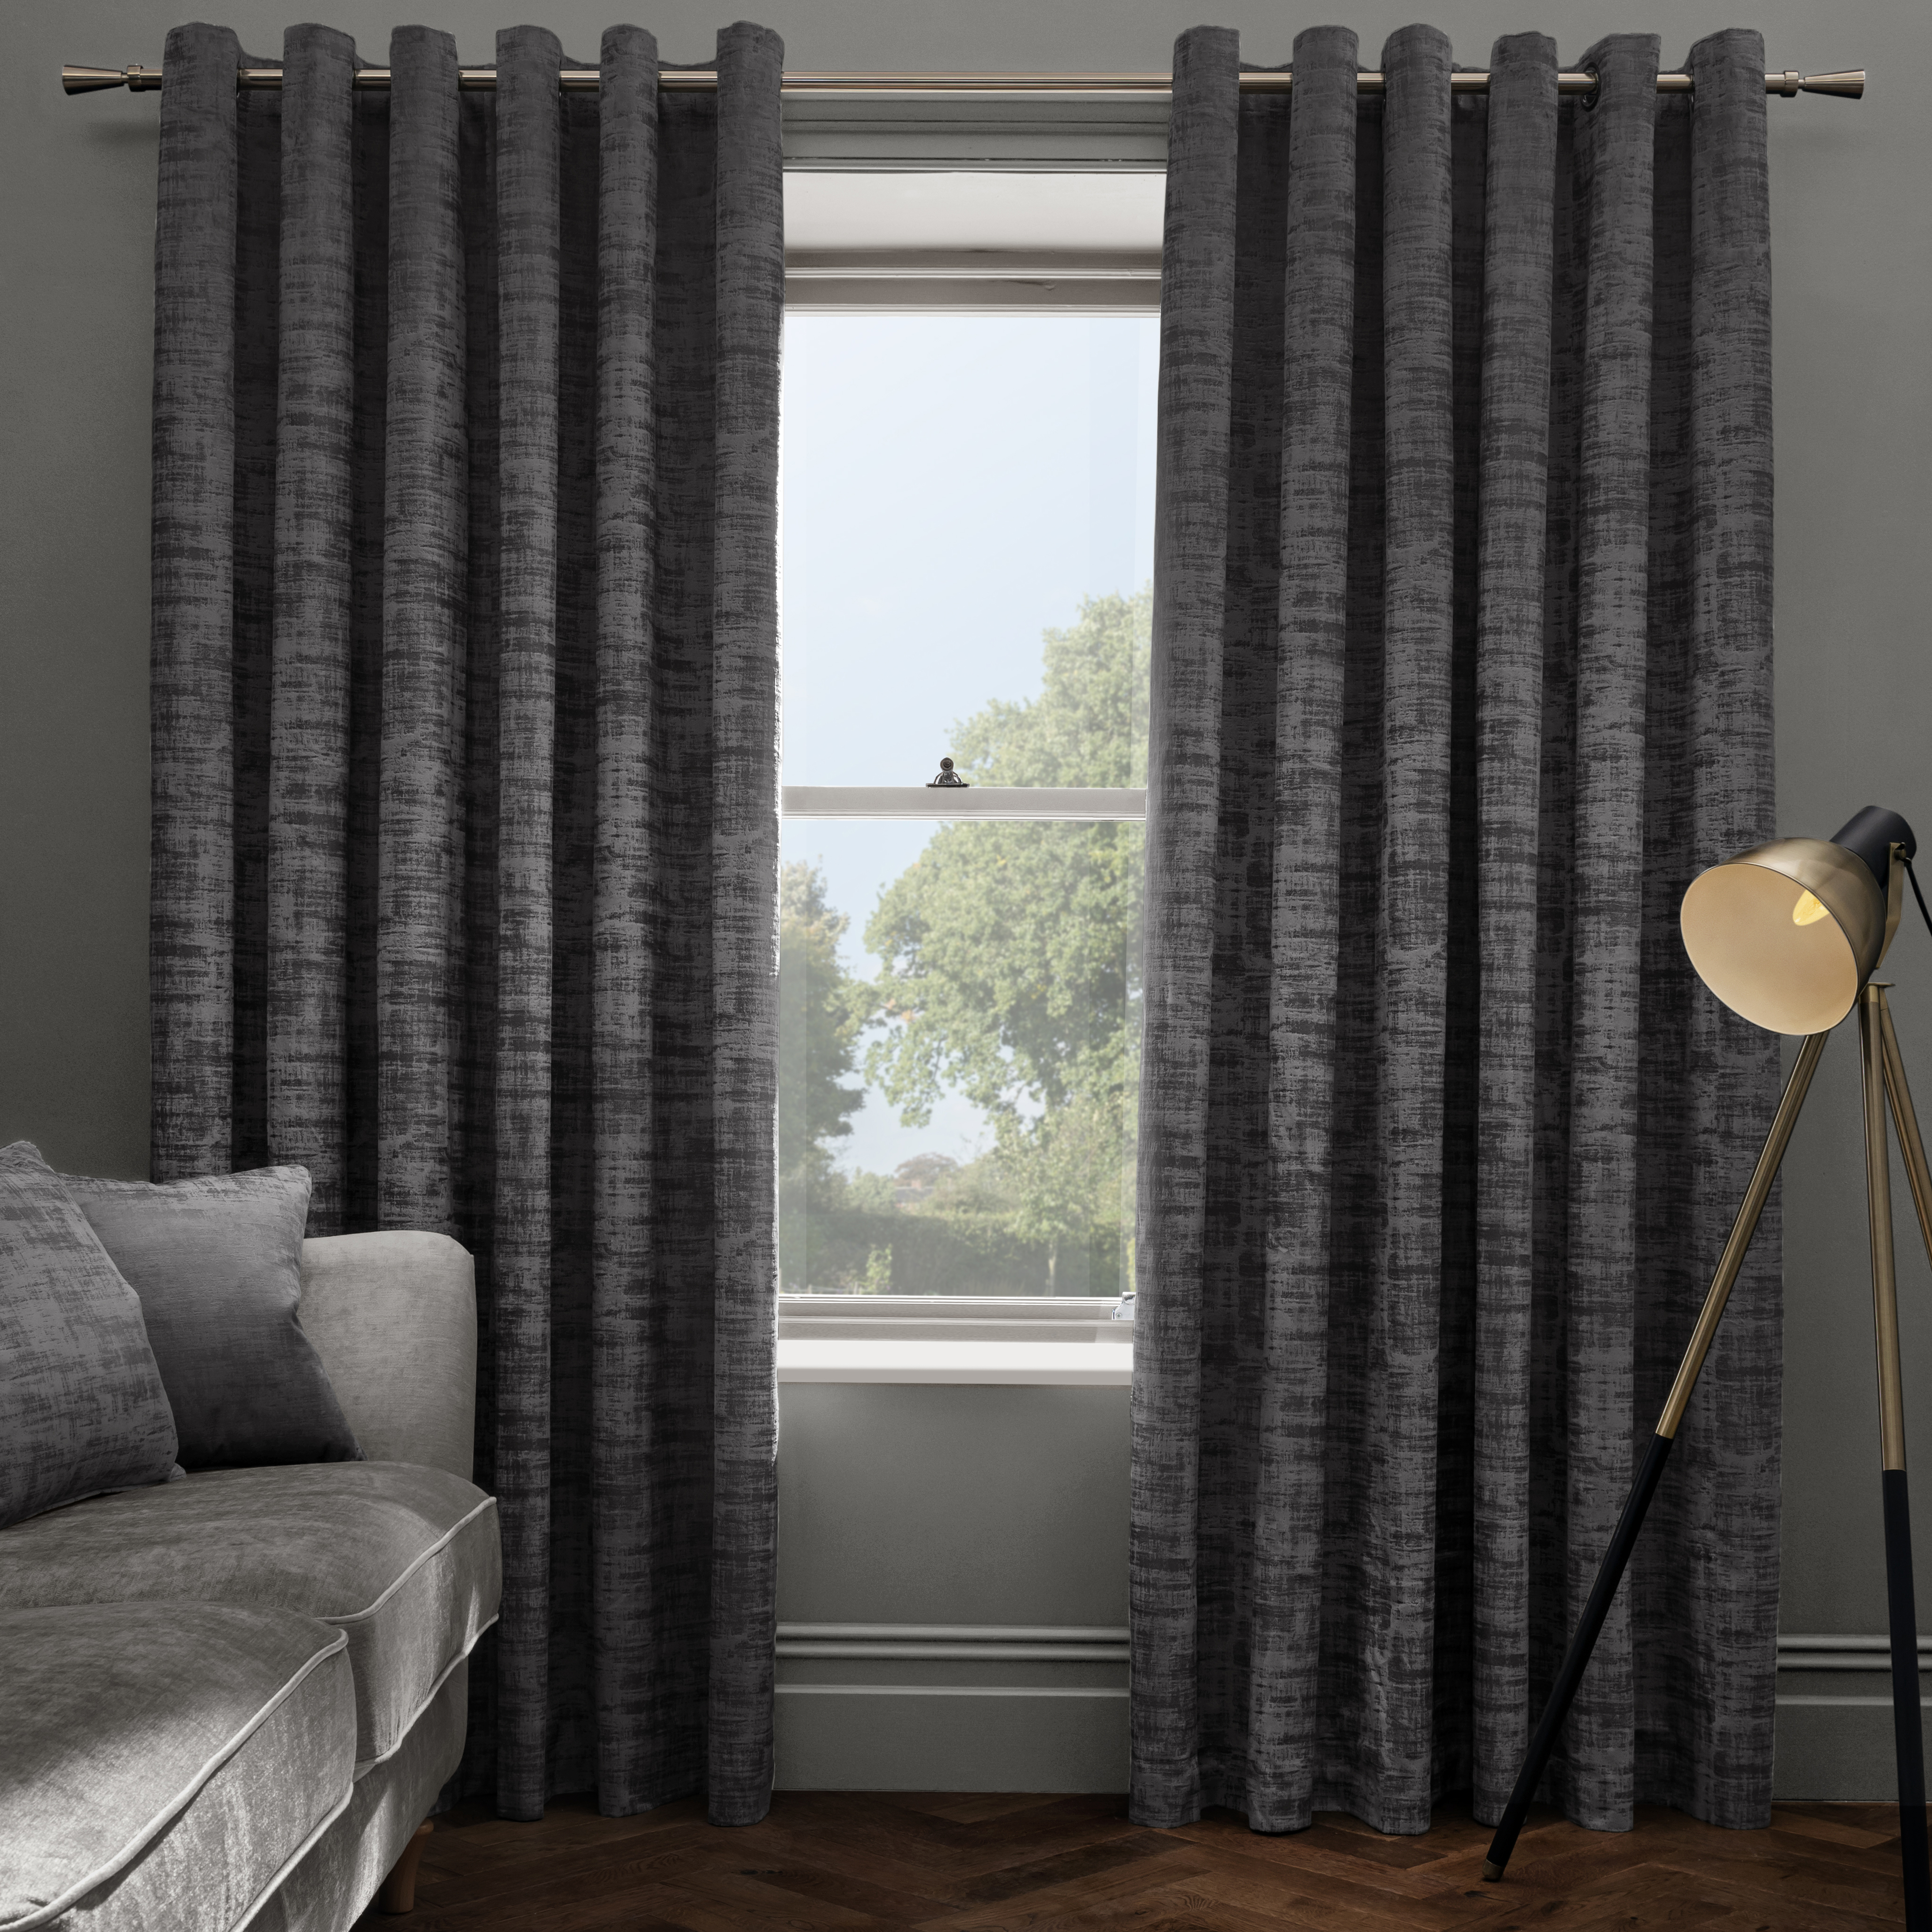 used curtains at pin chain curtain clips outdoor local cheap the weights i bought store maine and diy shop